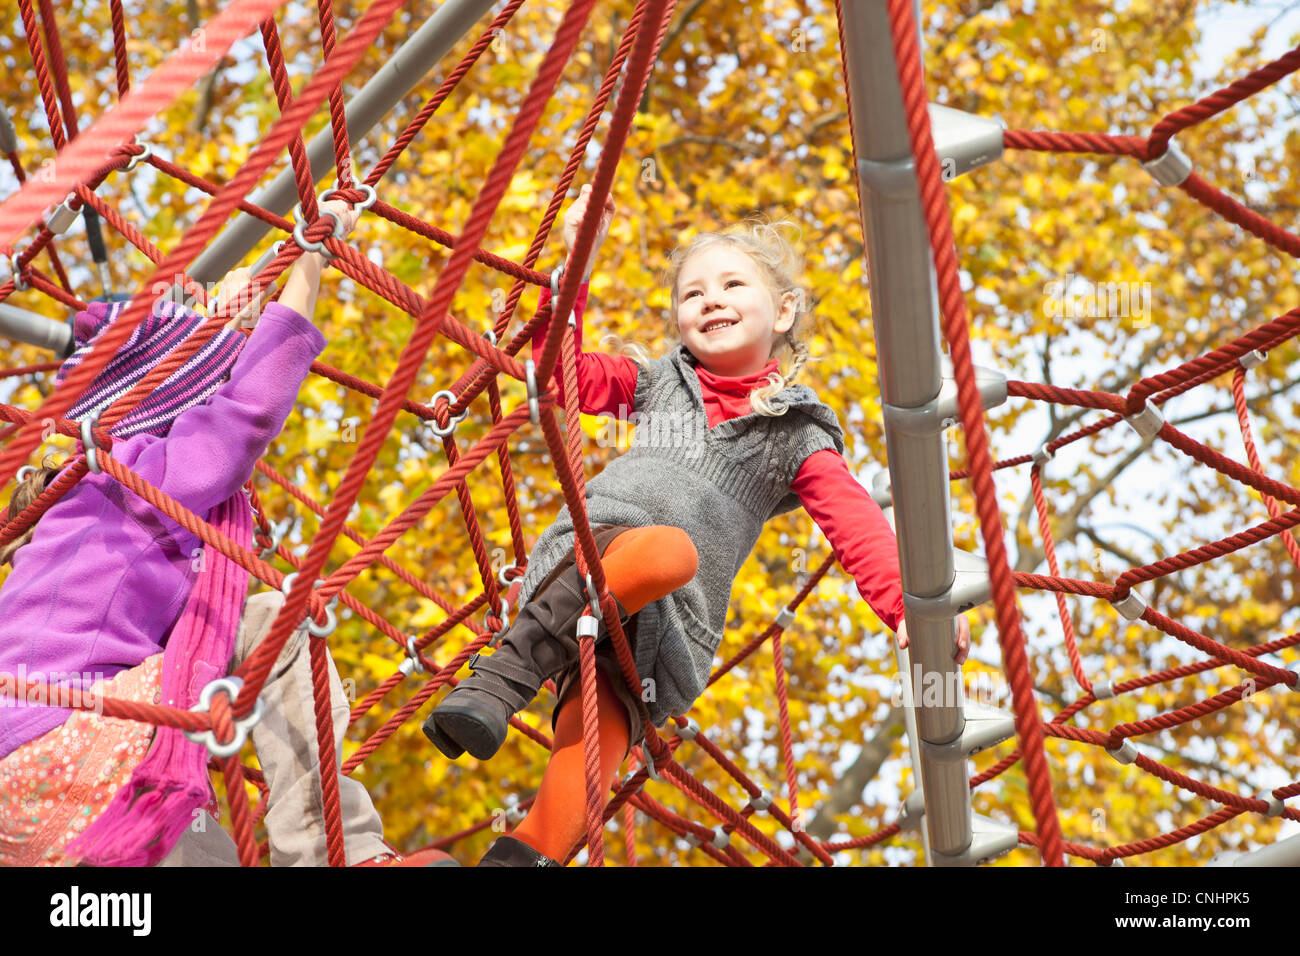 Kids on jungle gym - Stock Image